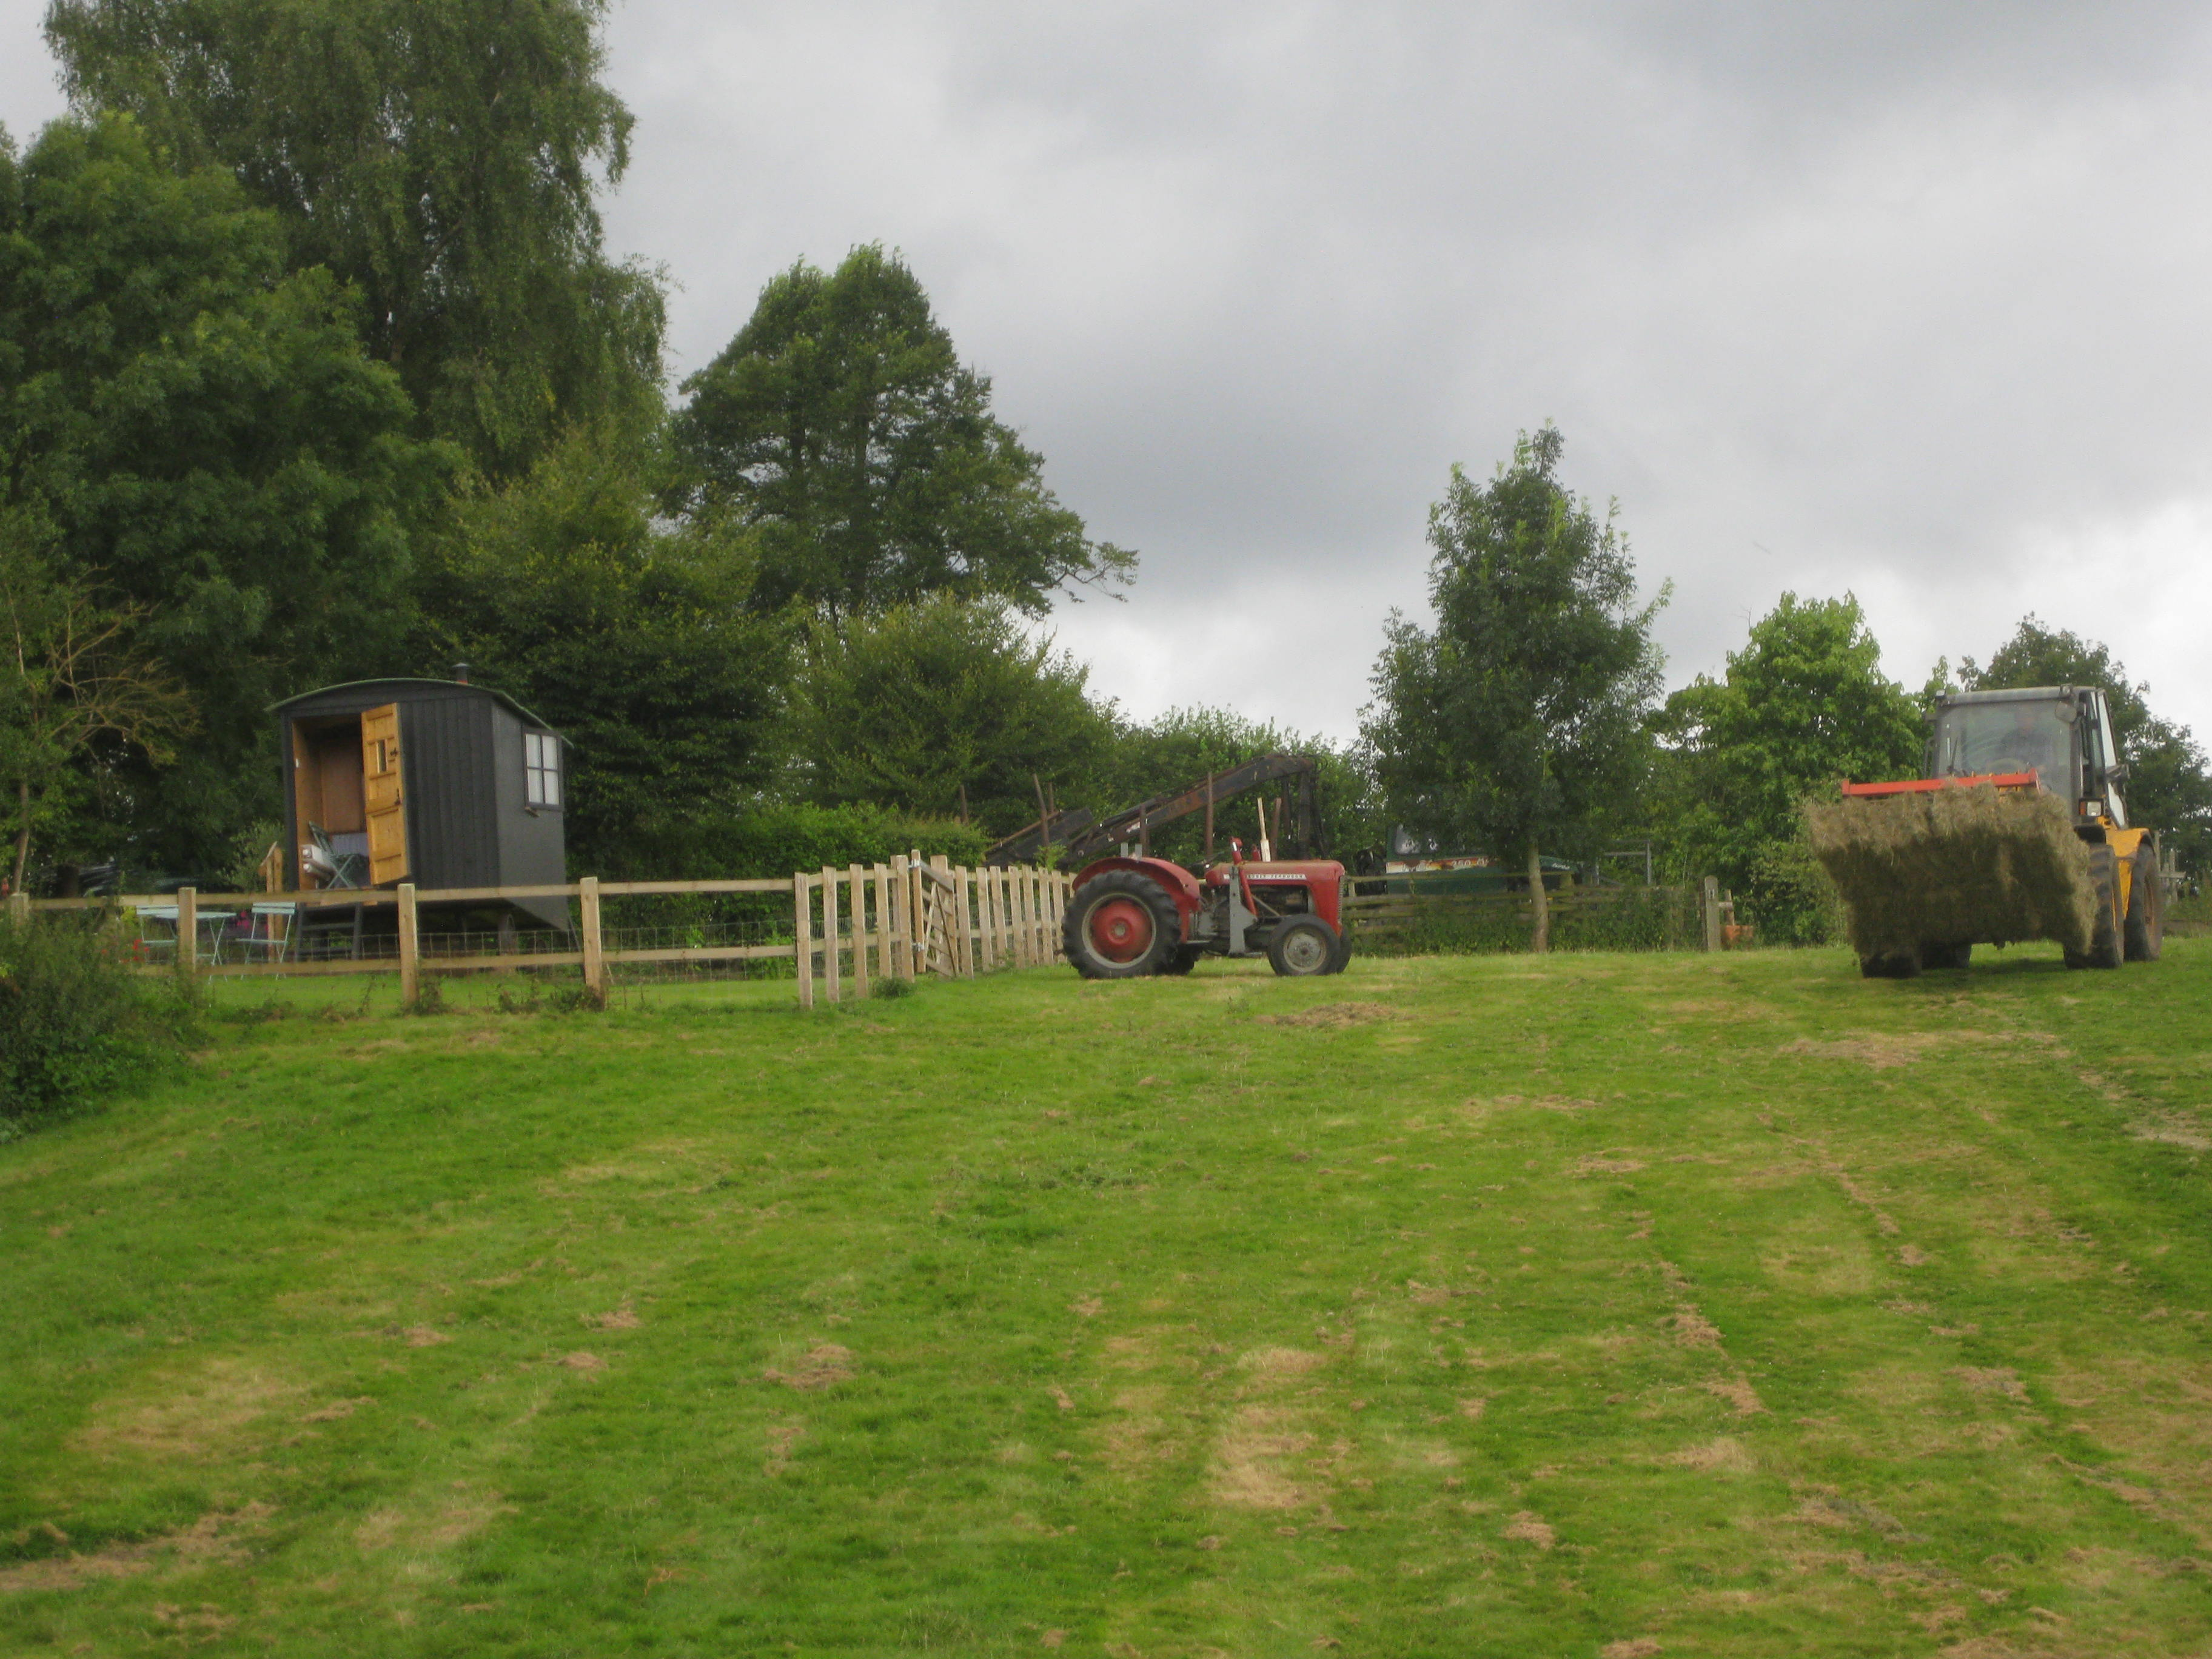 The Hut before the Arc and decking